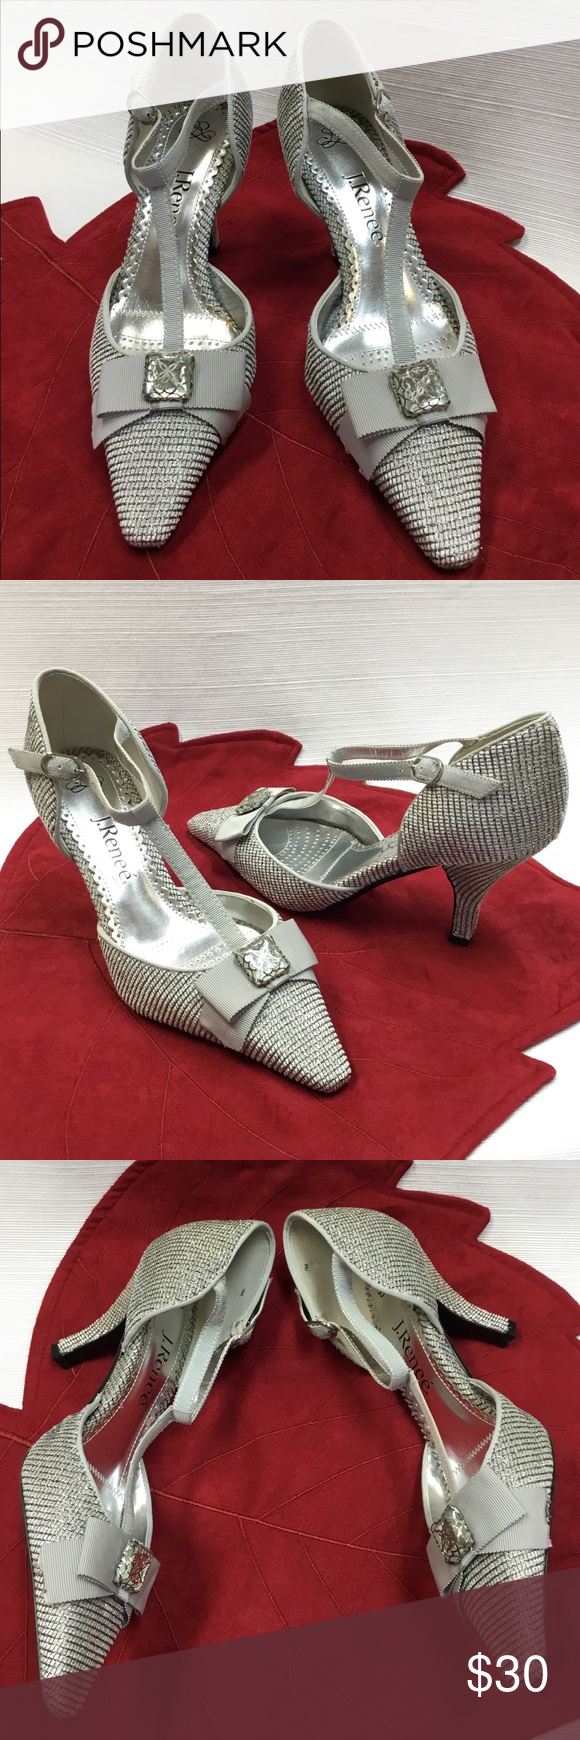 f5447a2e7749 New Beautiful Silver   Neutral Heels by J. Renee I usually ship in 24 to